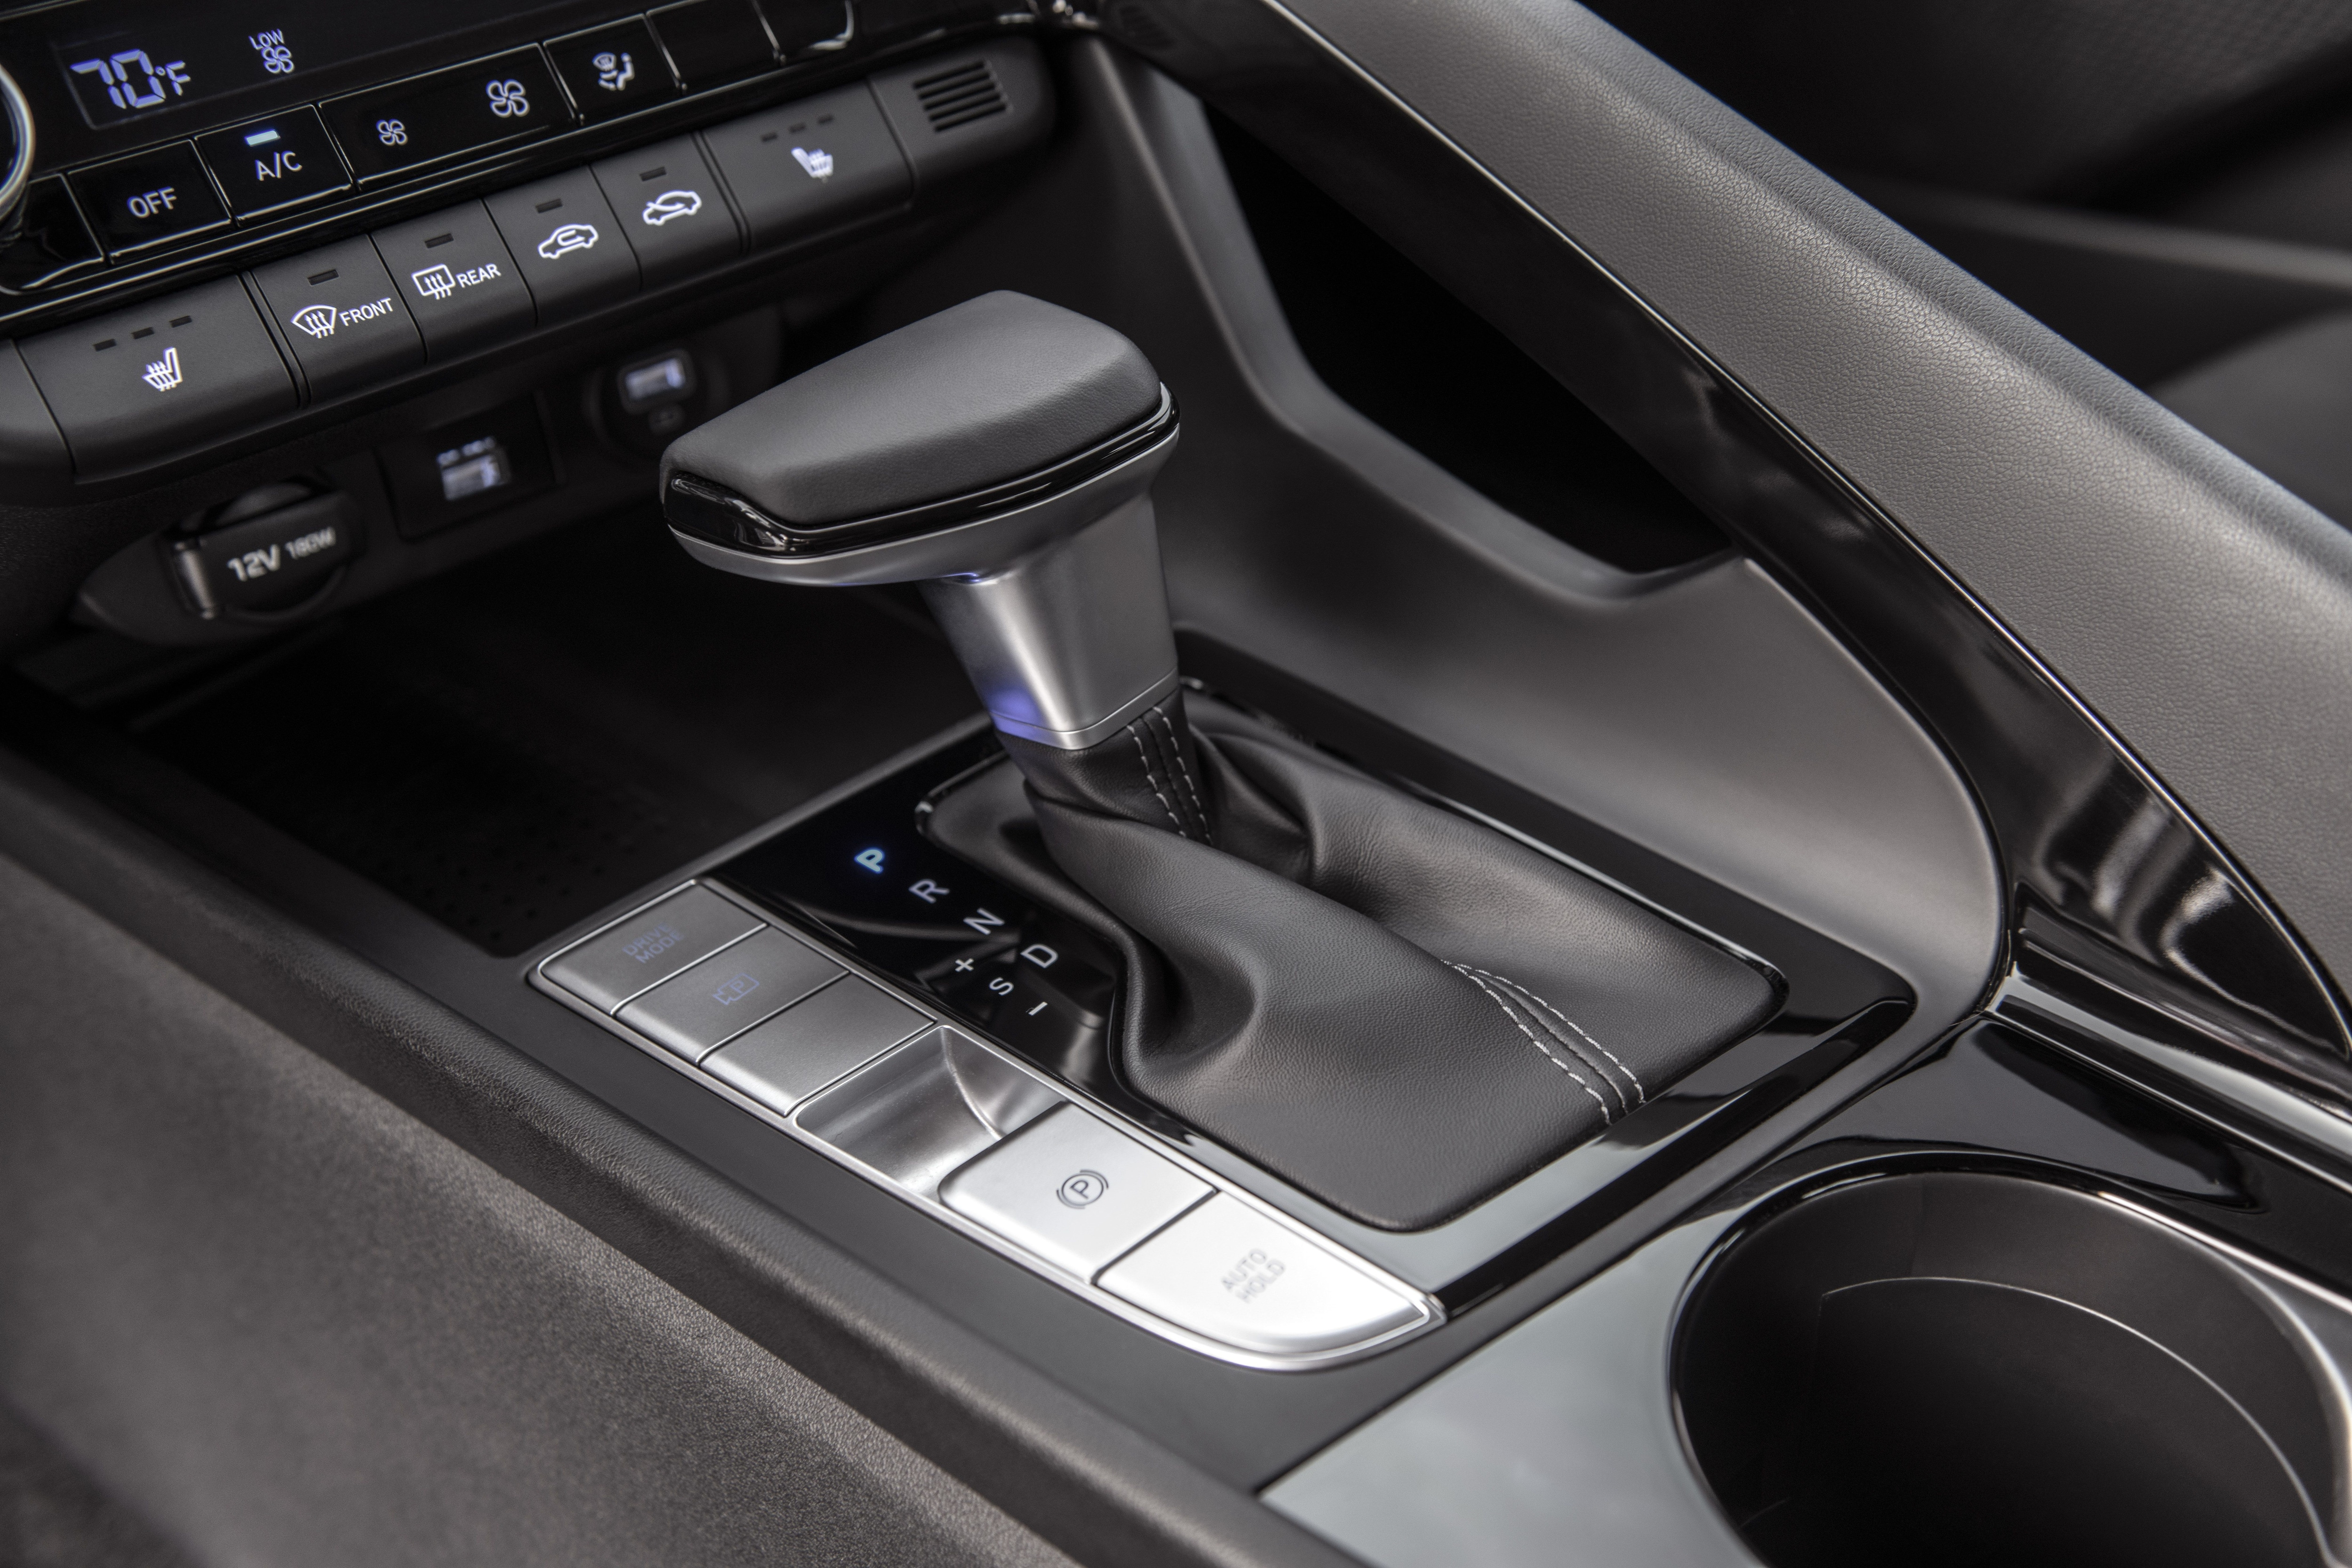 The new Hyundai Elantra's gearbox is equipped with a new shift control strategy that 'increases linearity between driver input, vehicle behaviour and acceleration'.